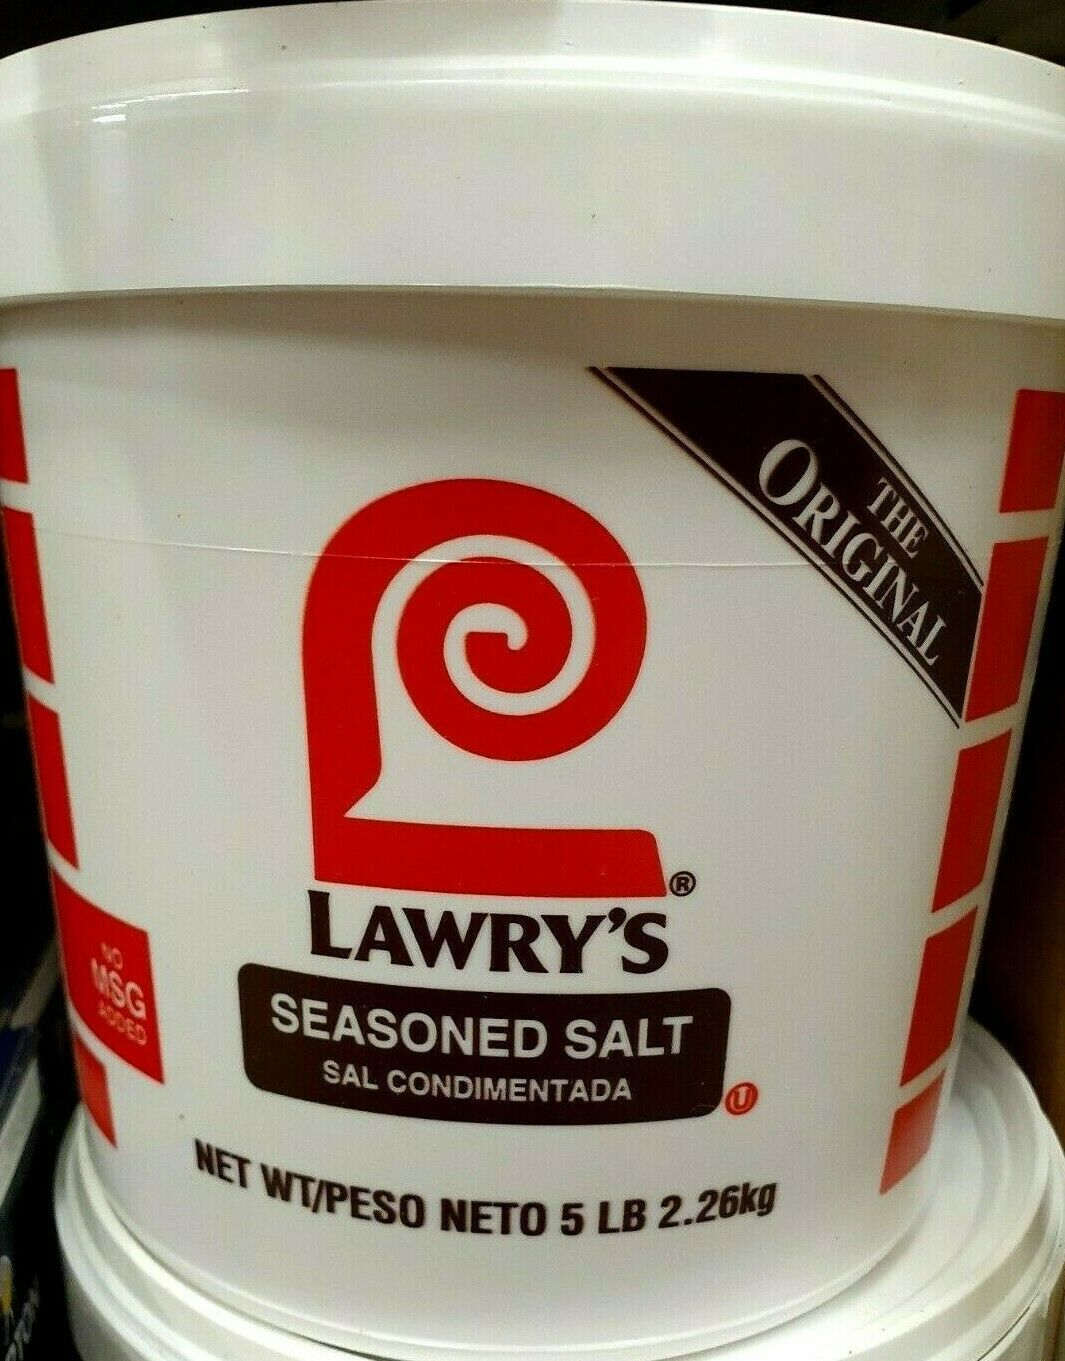 Primary image for Lawry's Seasoned Salt 5 lb. tub